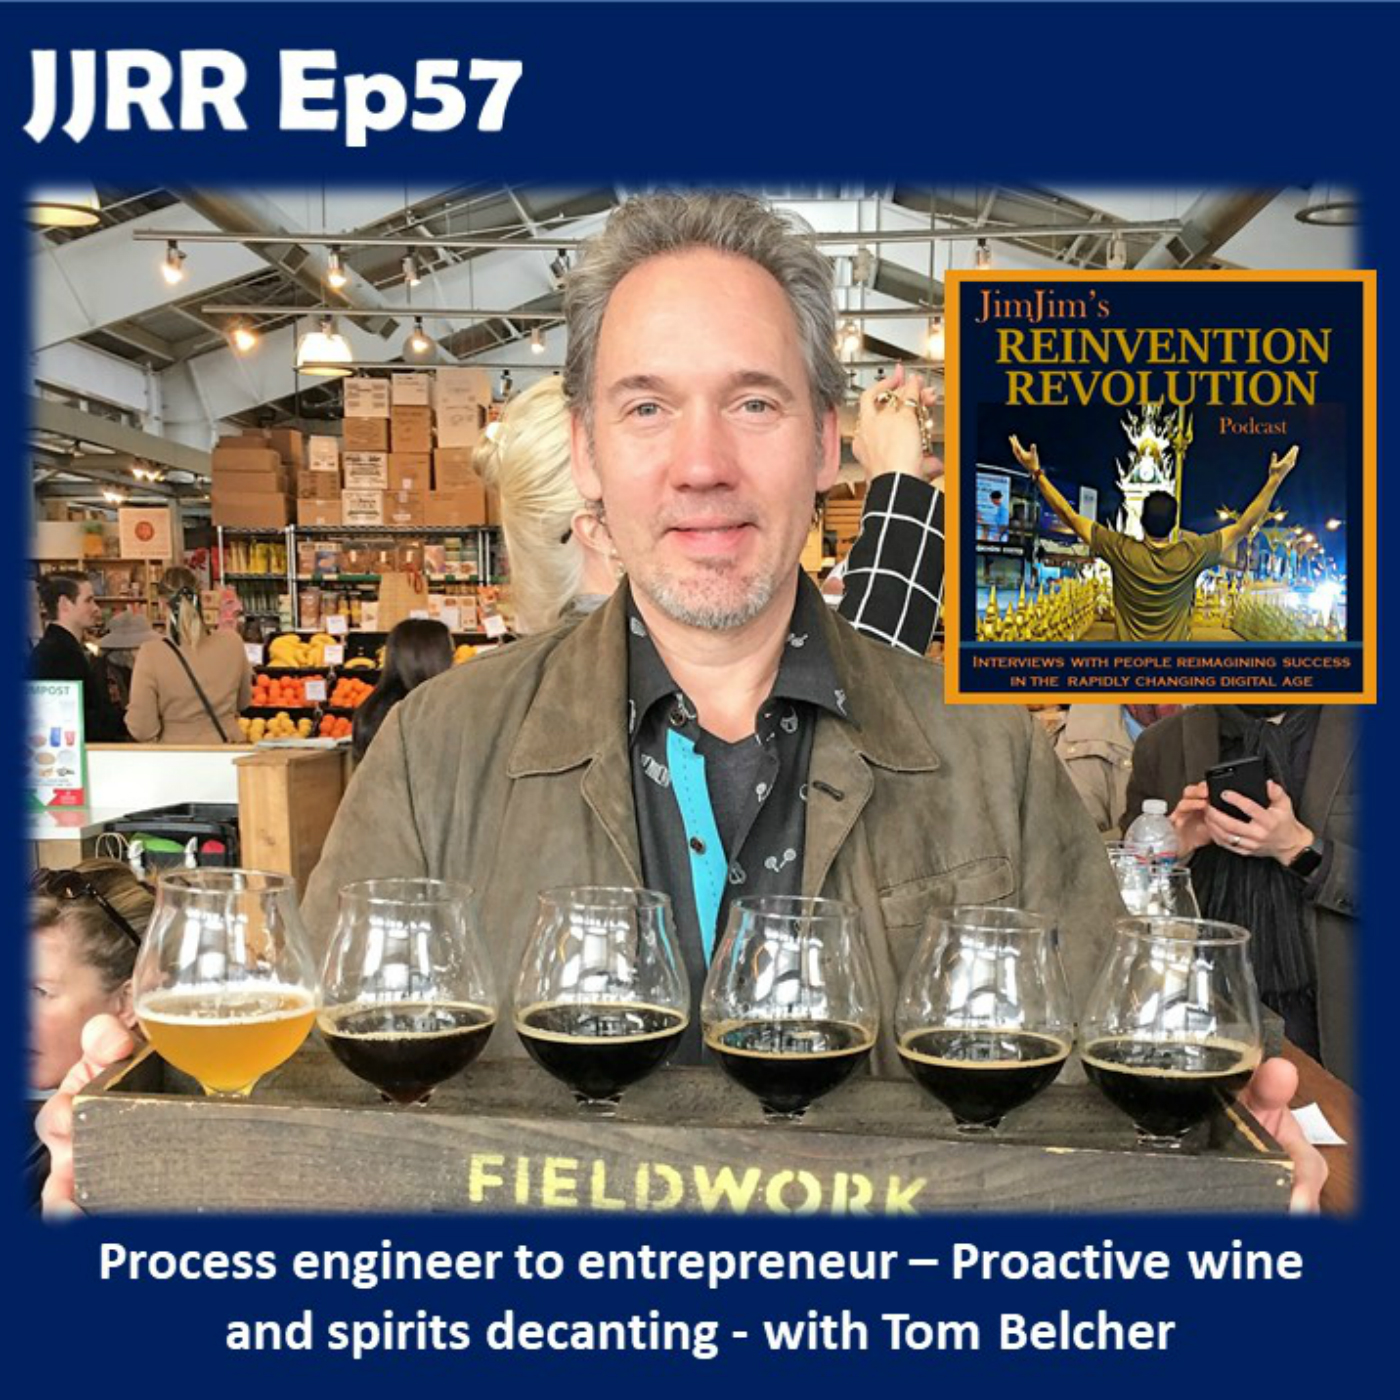 JJRR 57 Process engineer to Entrepreneur – Proactive wine and spirits decanting – with Tom Belcher